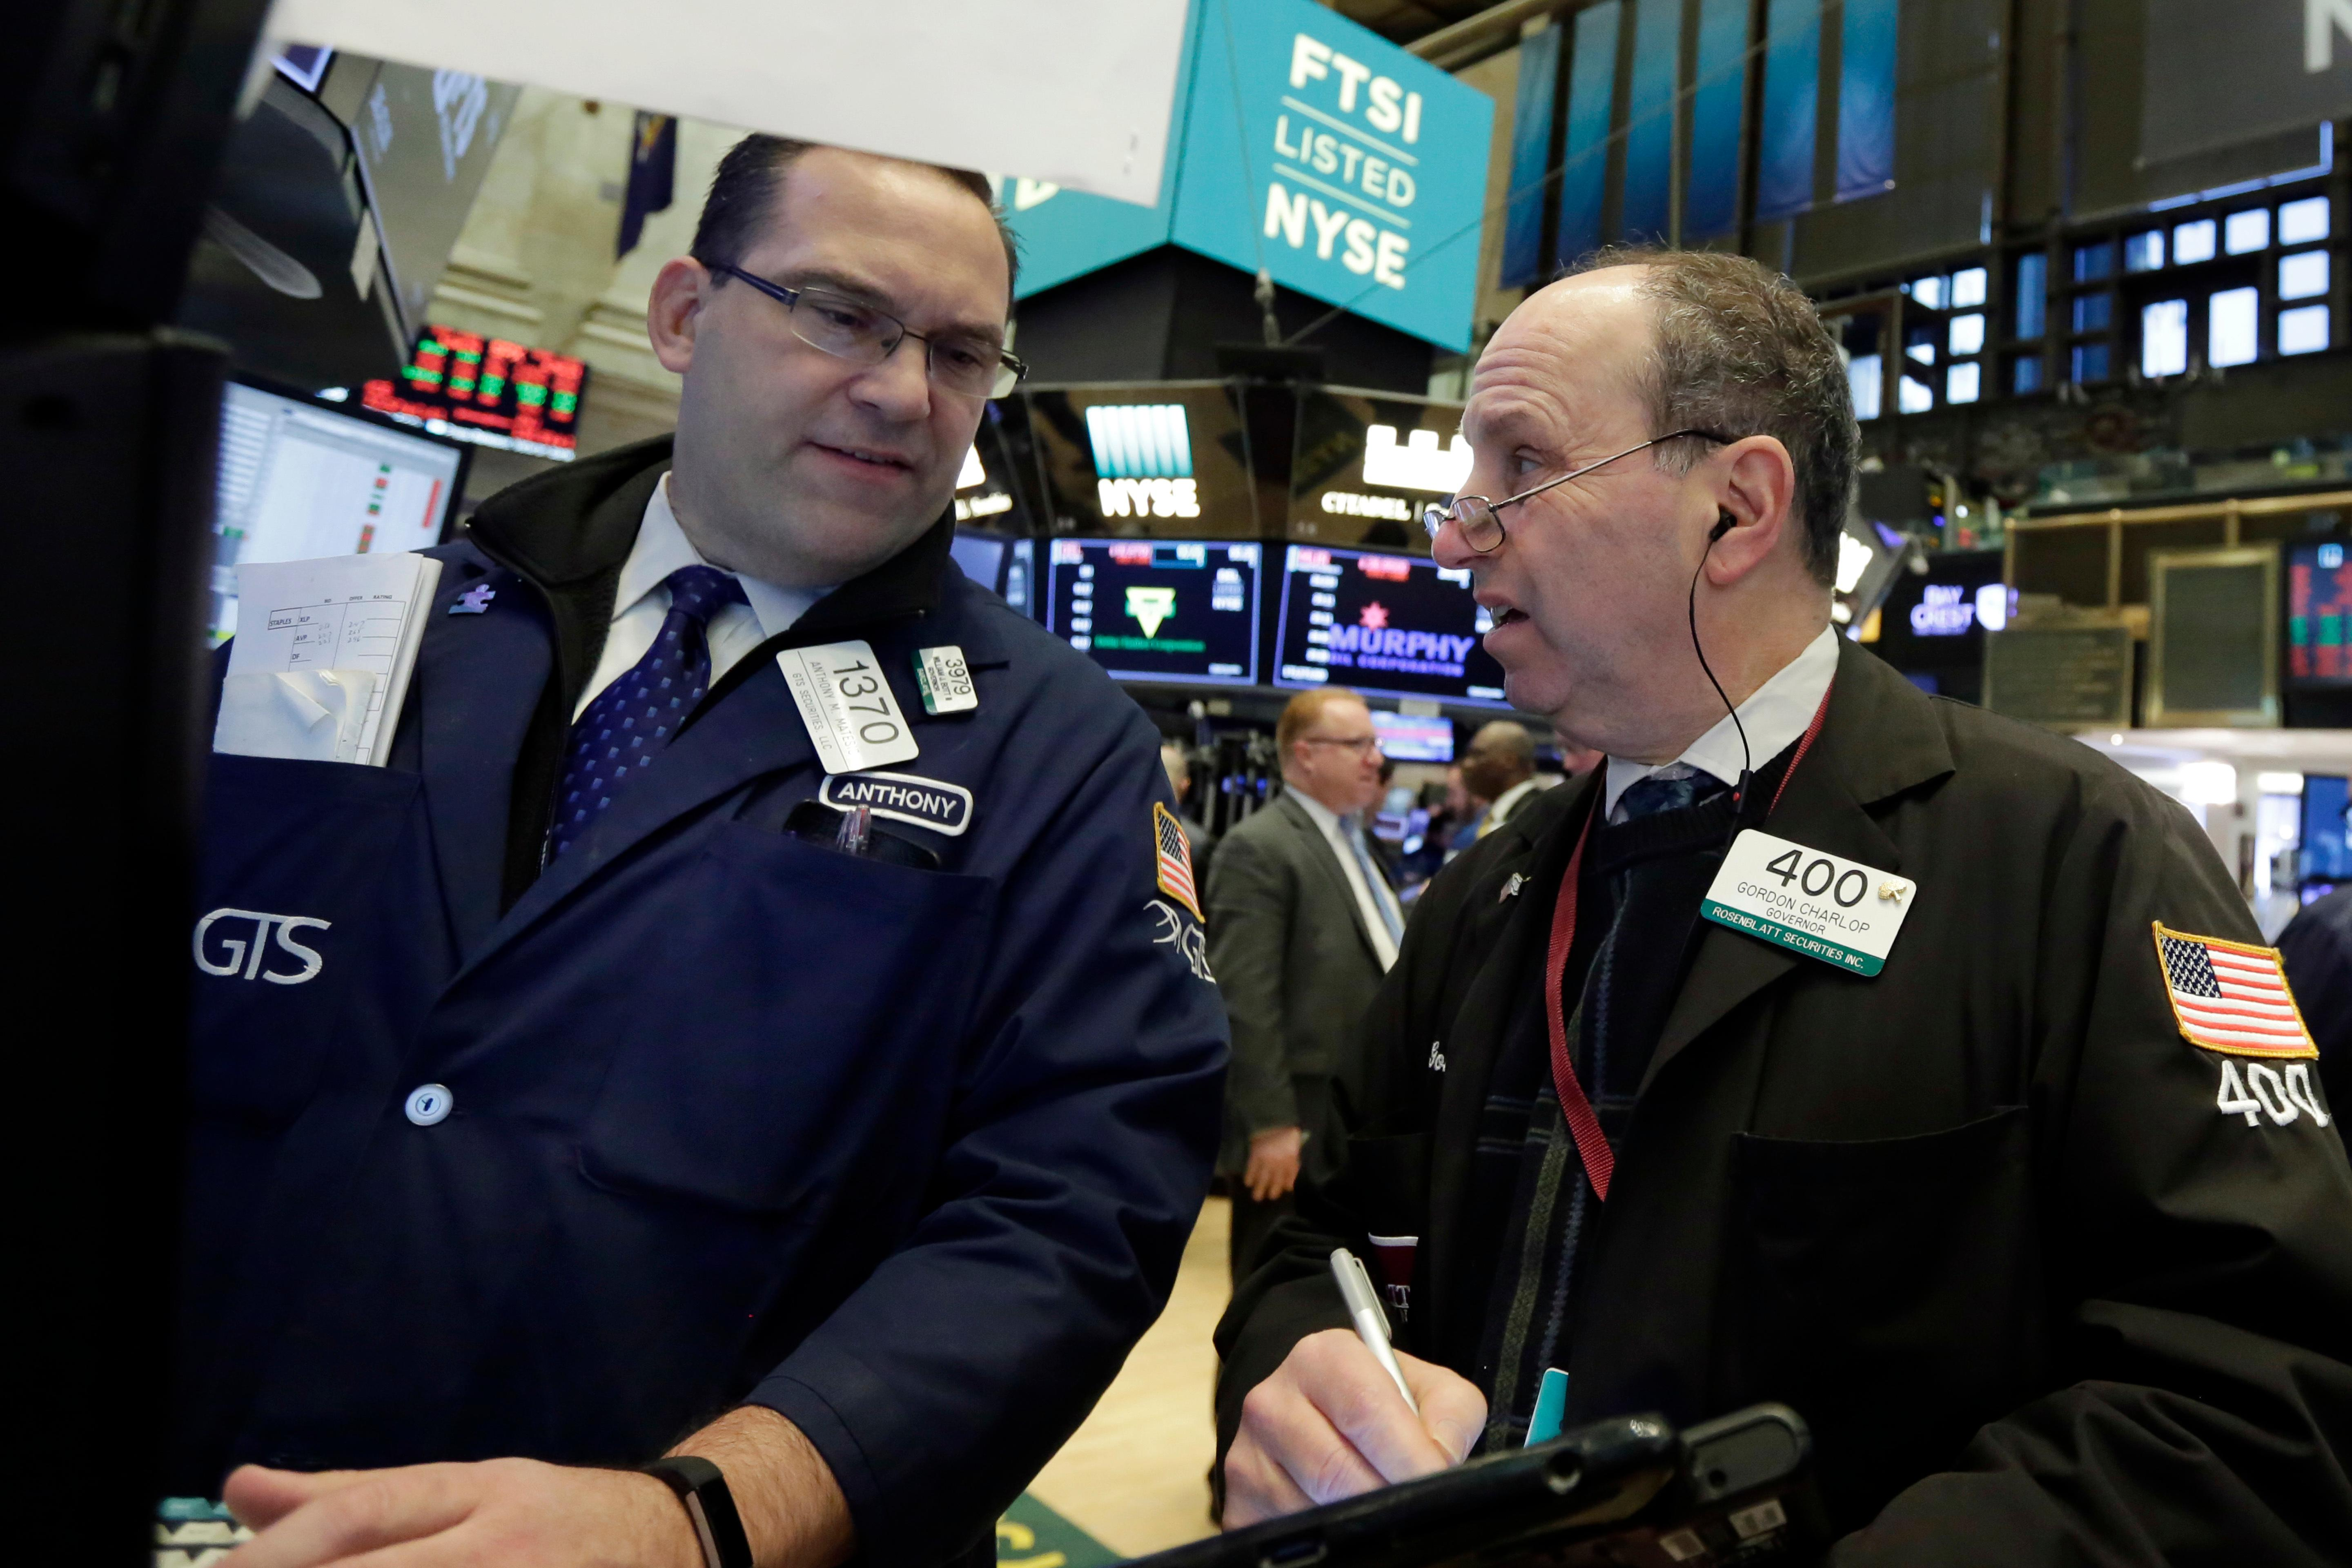 Specialist Anthony Matesic, left, and trader Gordon Charlop work on the floor of the New York Stock Exchange, Monday, Feb. 5, 2018. Stock markets around the world took another pummeling Monday as investors continued to fret over rising U.S. bond yields. (AP Photo/Richard Drew)